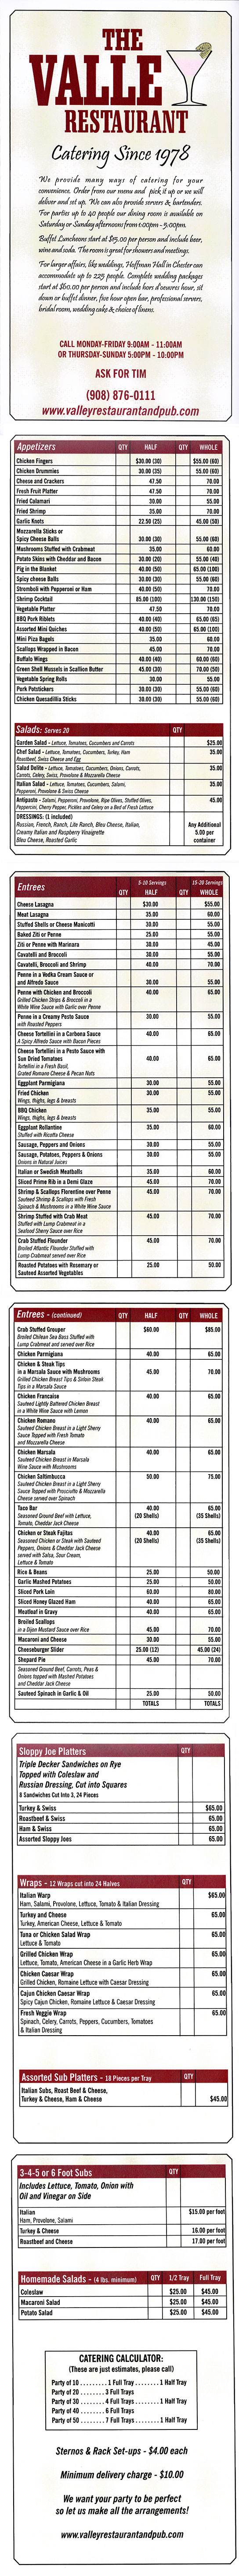 catering-menu-the-valley-restaurant-2016